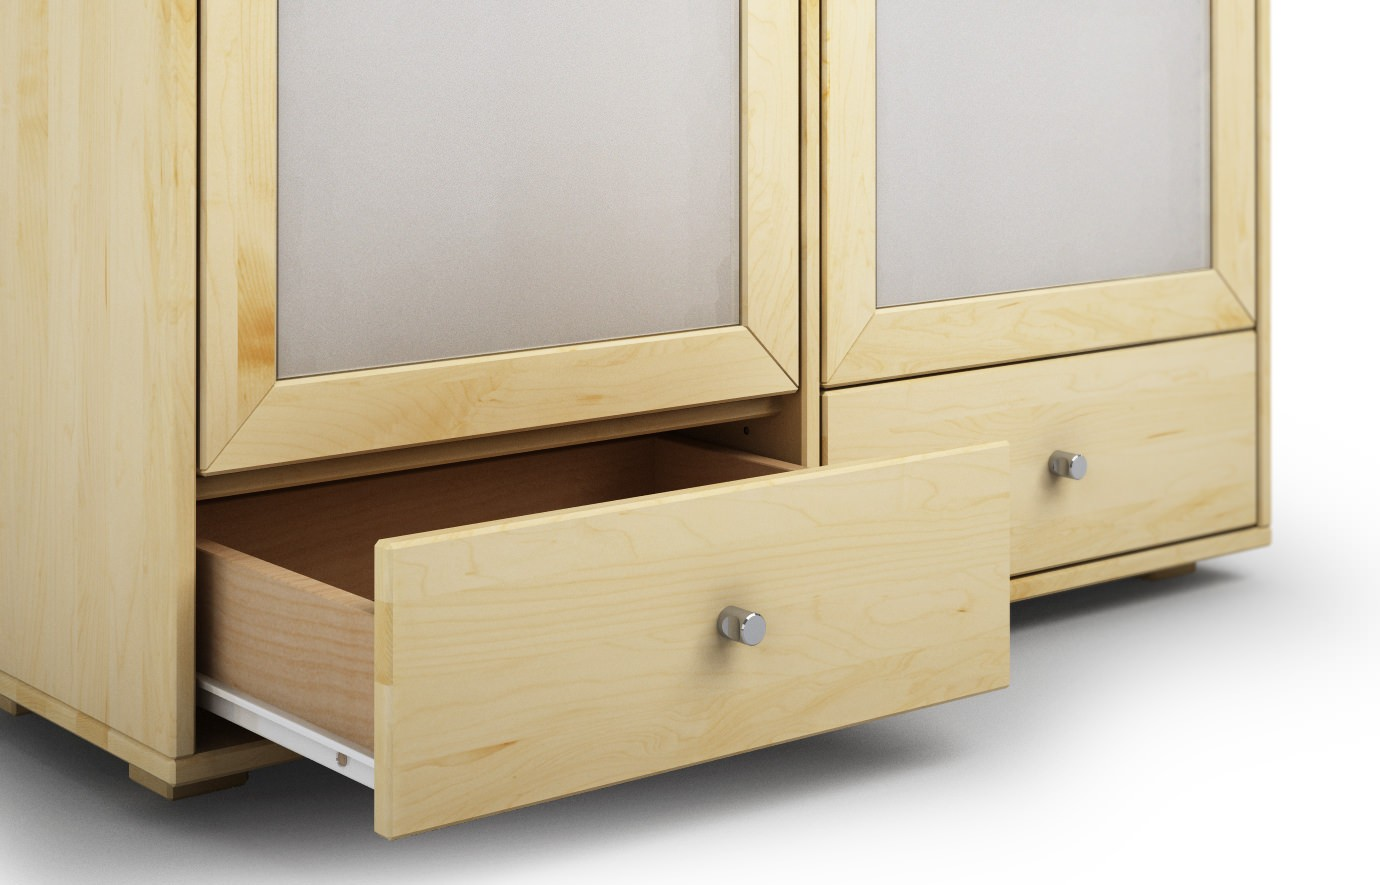 Highboard Ahorn Cavadore Design Sideboard Swing 01 Moderne Kommode